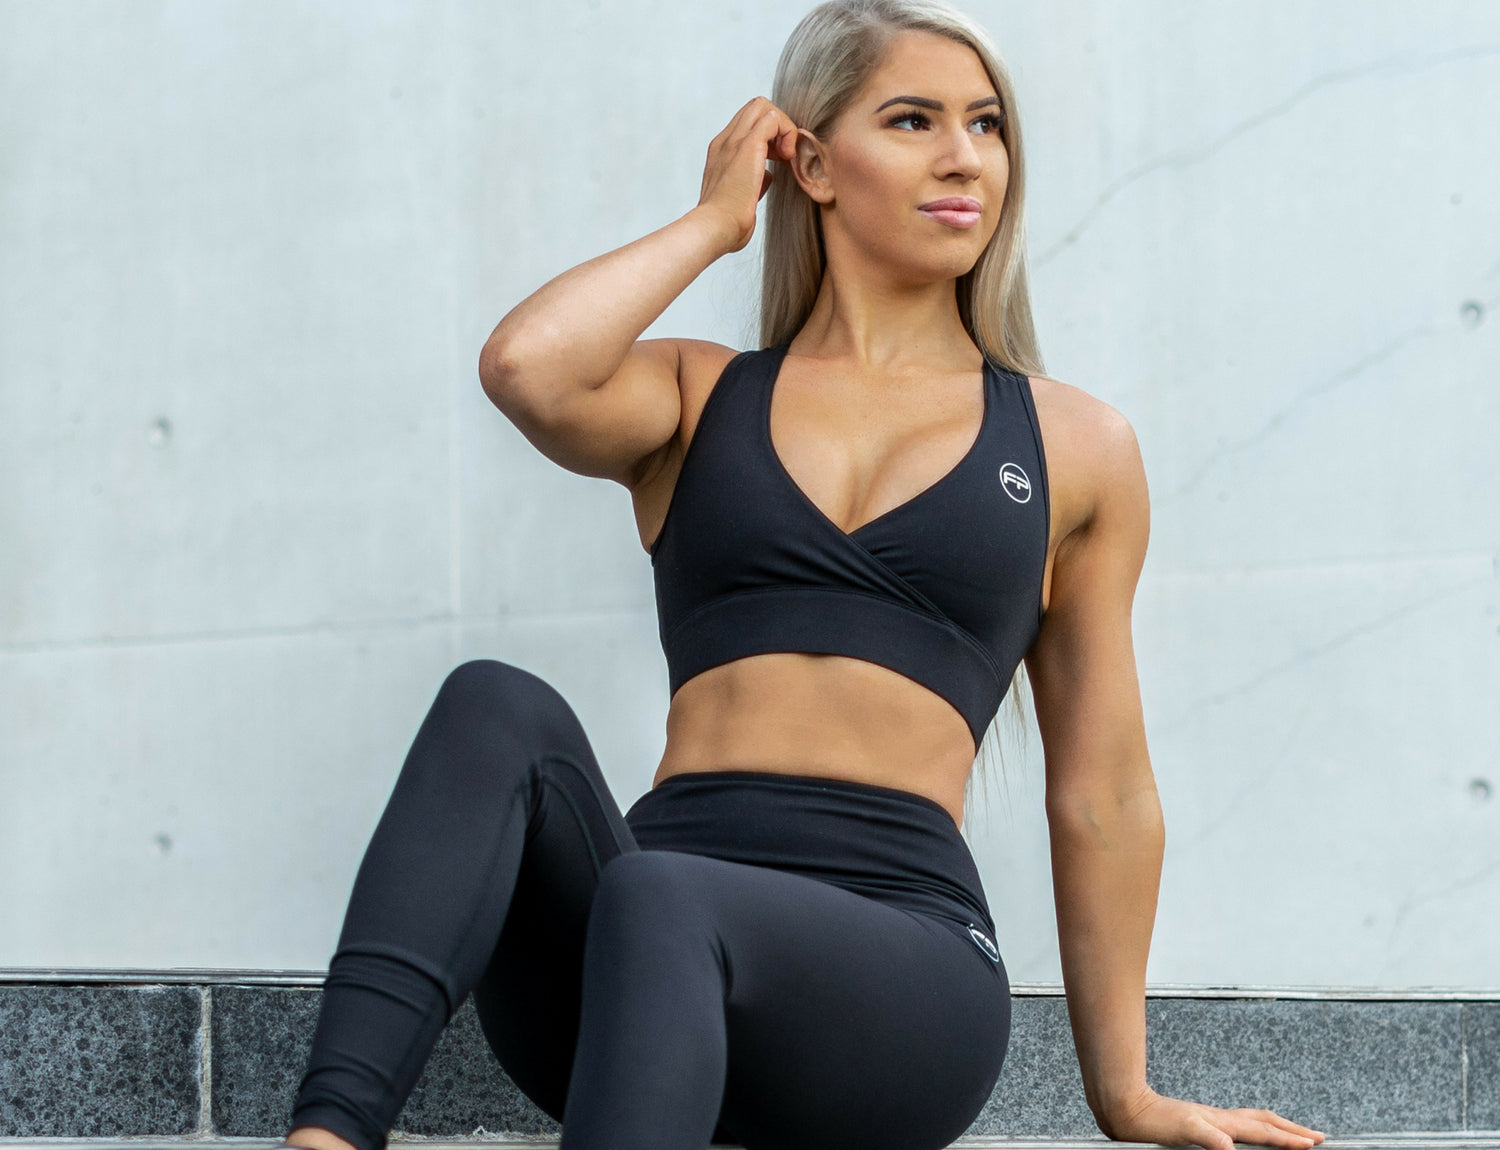 Gym Clothes Australia Afterpay | Toffee Art